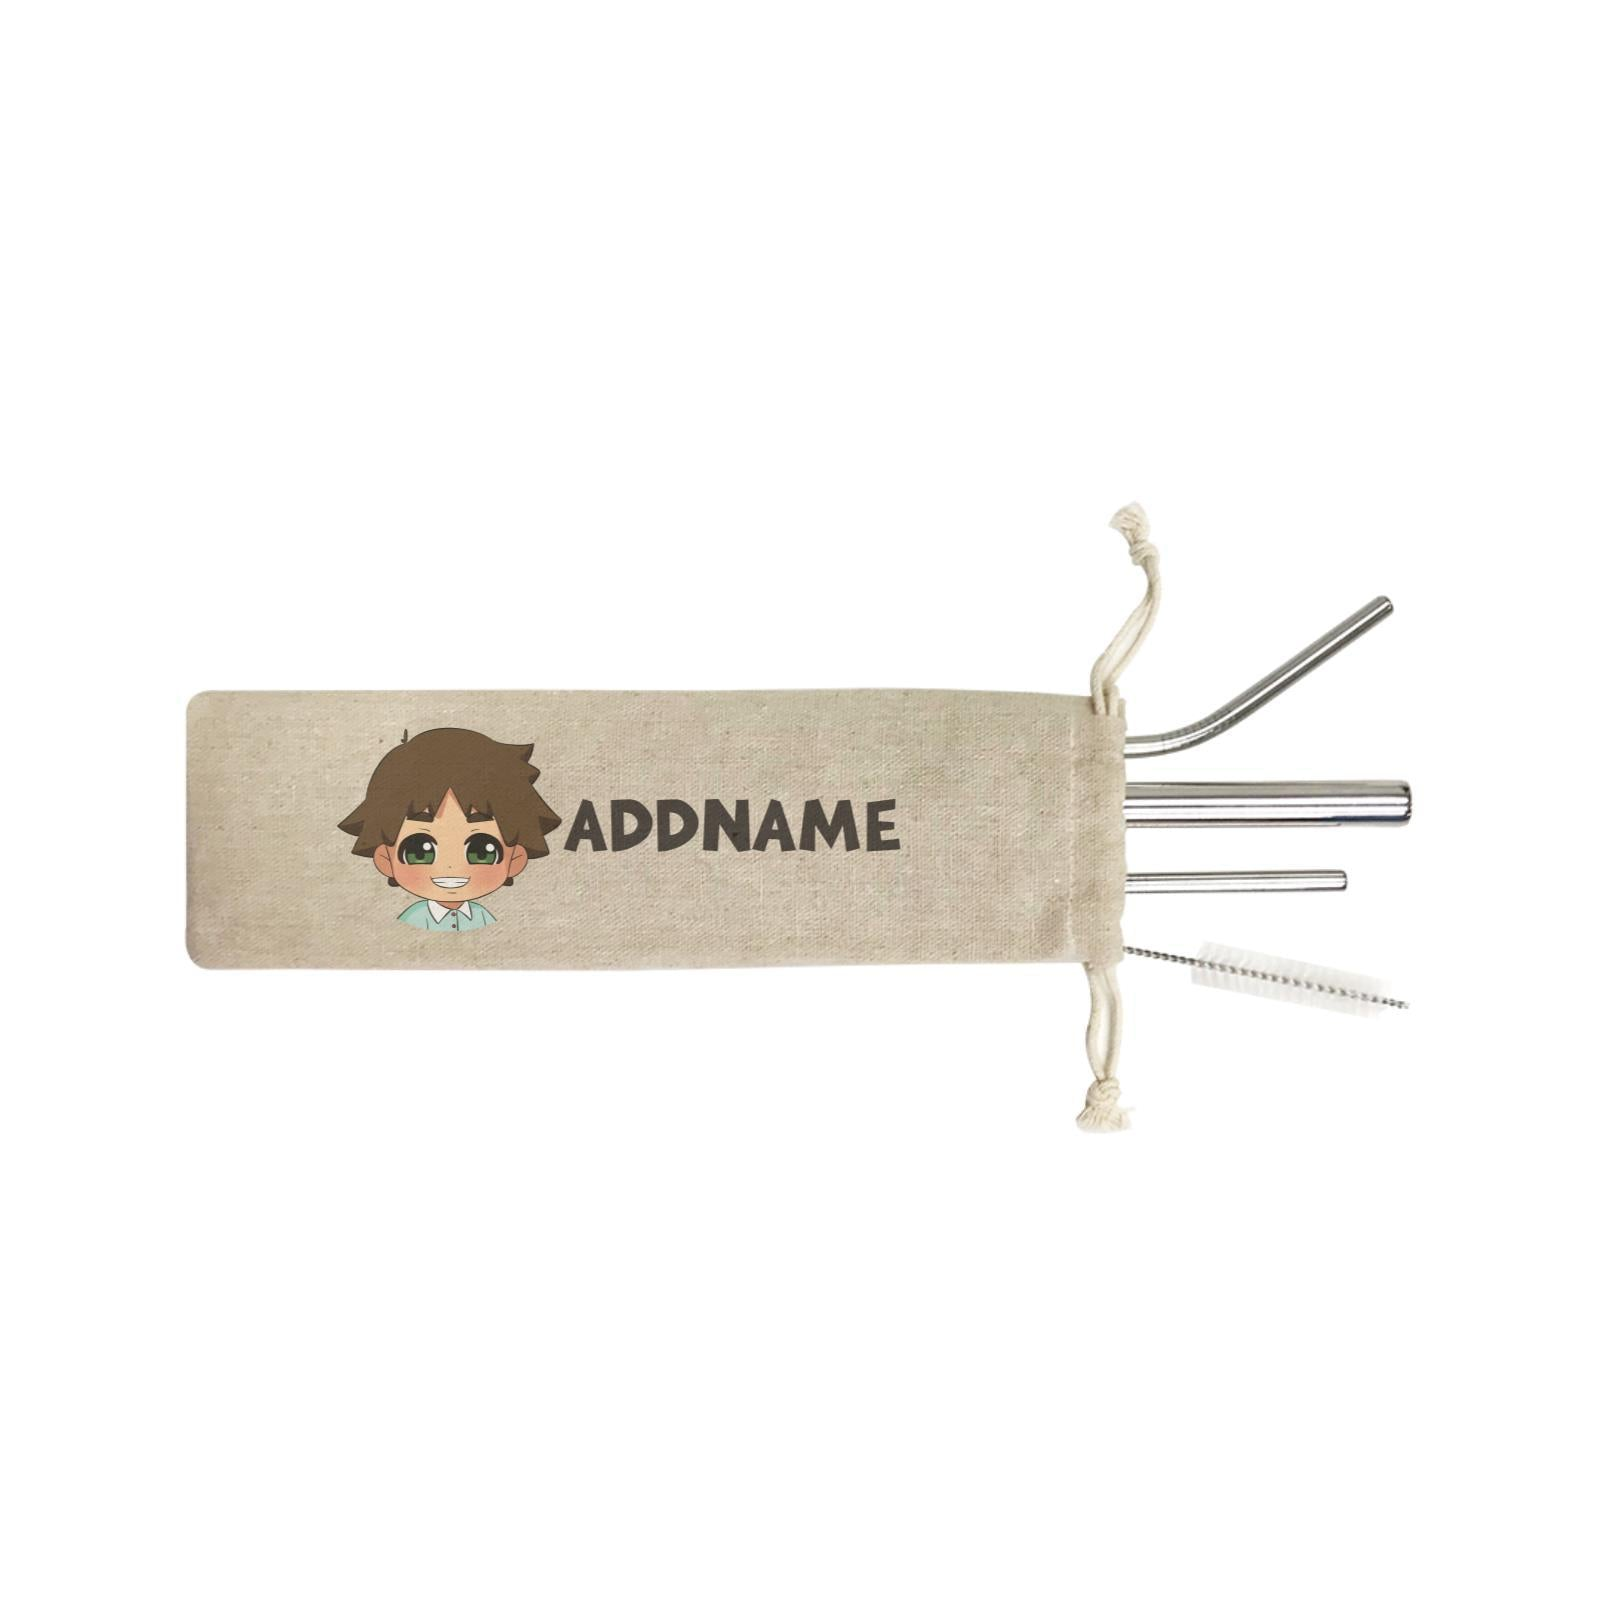 Children's Day Gift Series Little Boy Addname SB 4-in-1 Stainless Steel Straw Set In a Satchel